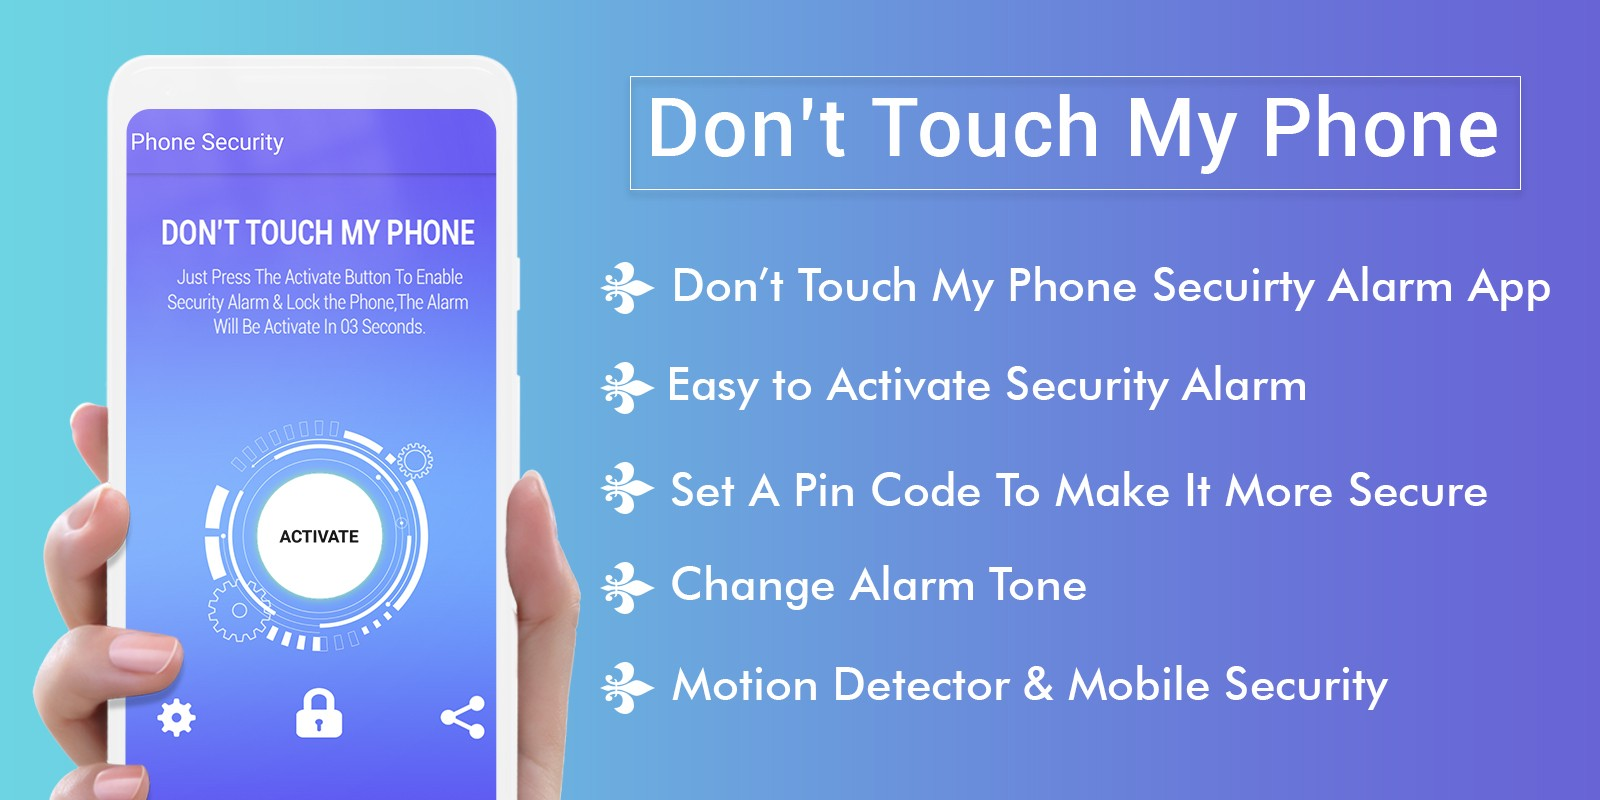 Don't Touch My Phone - Android Source Code